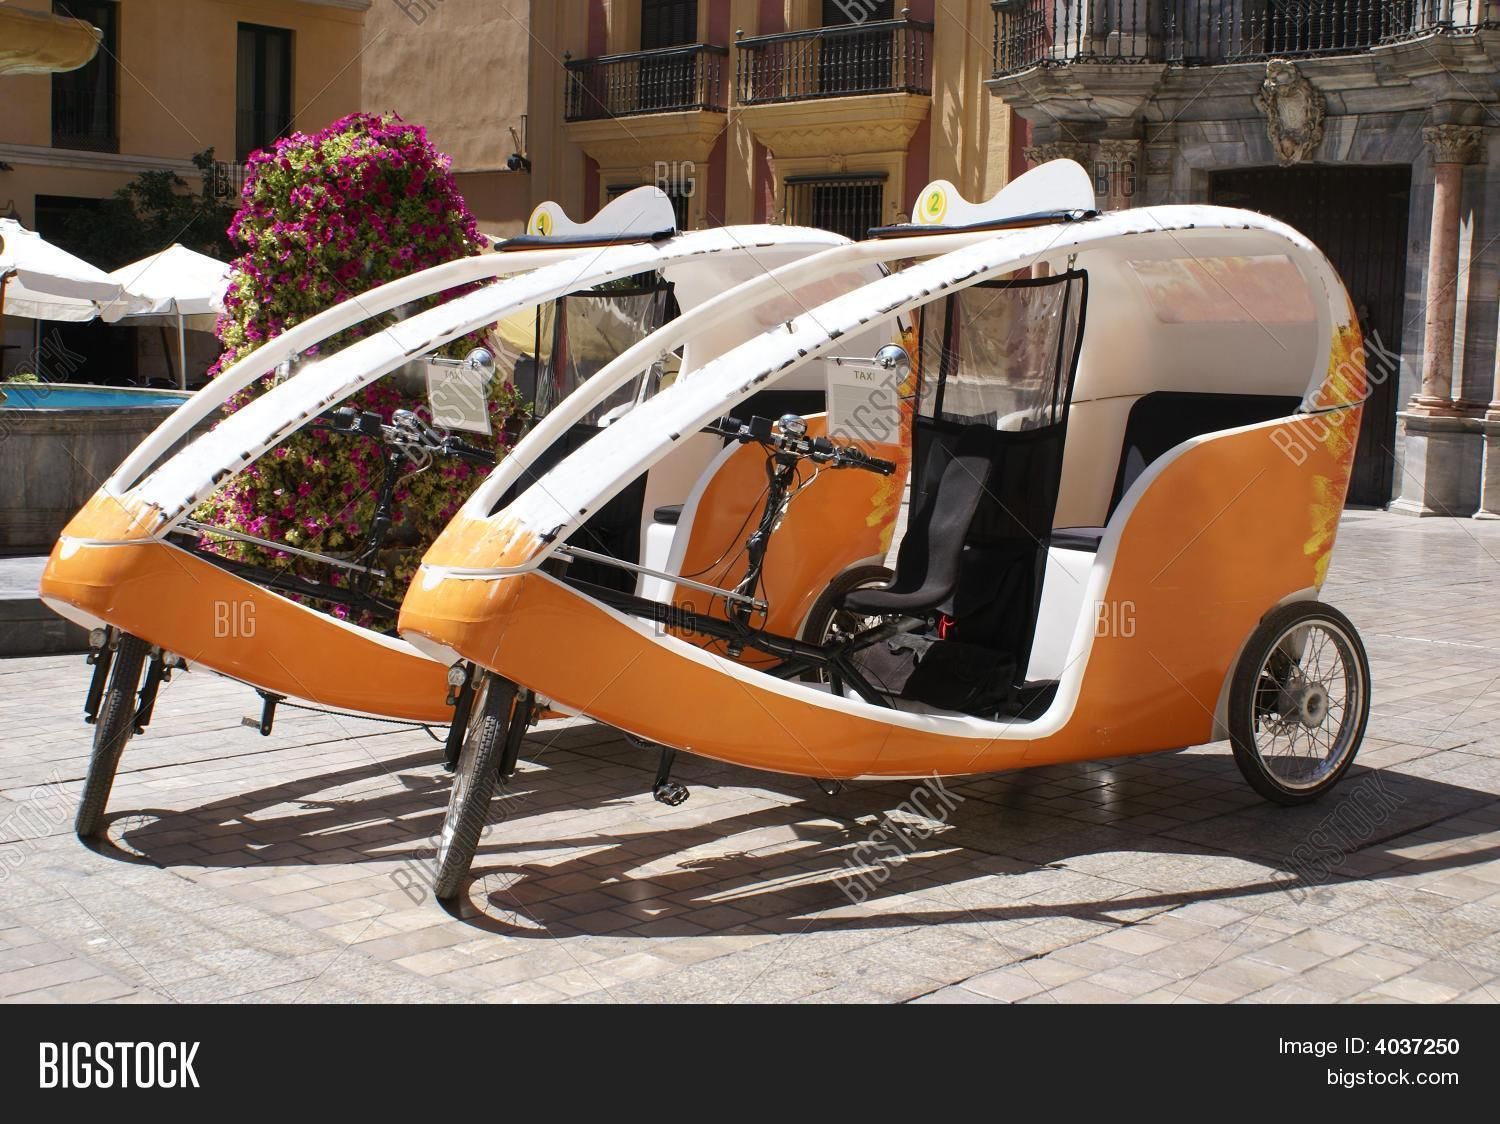 taxis spanish taxi vehicle taxis image photo bigstock